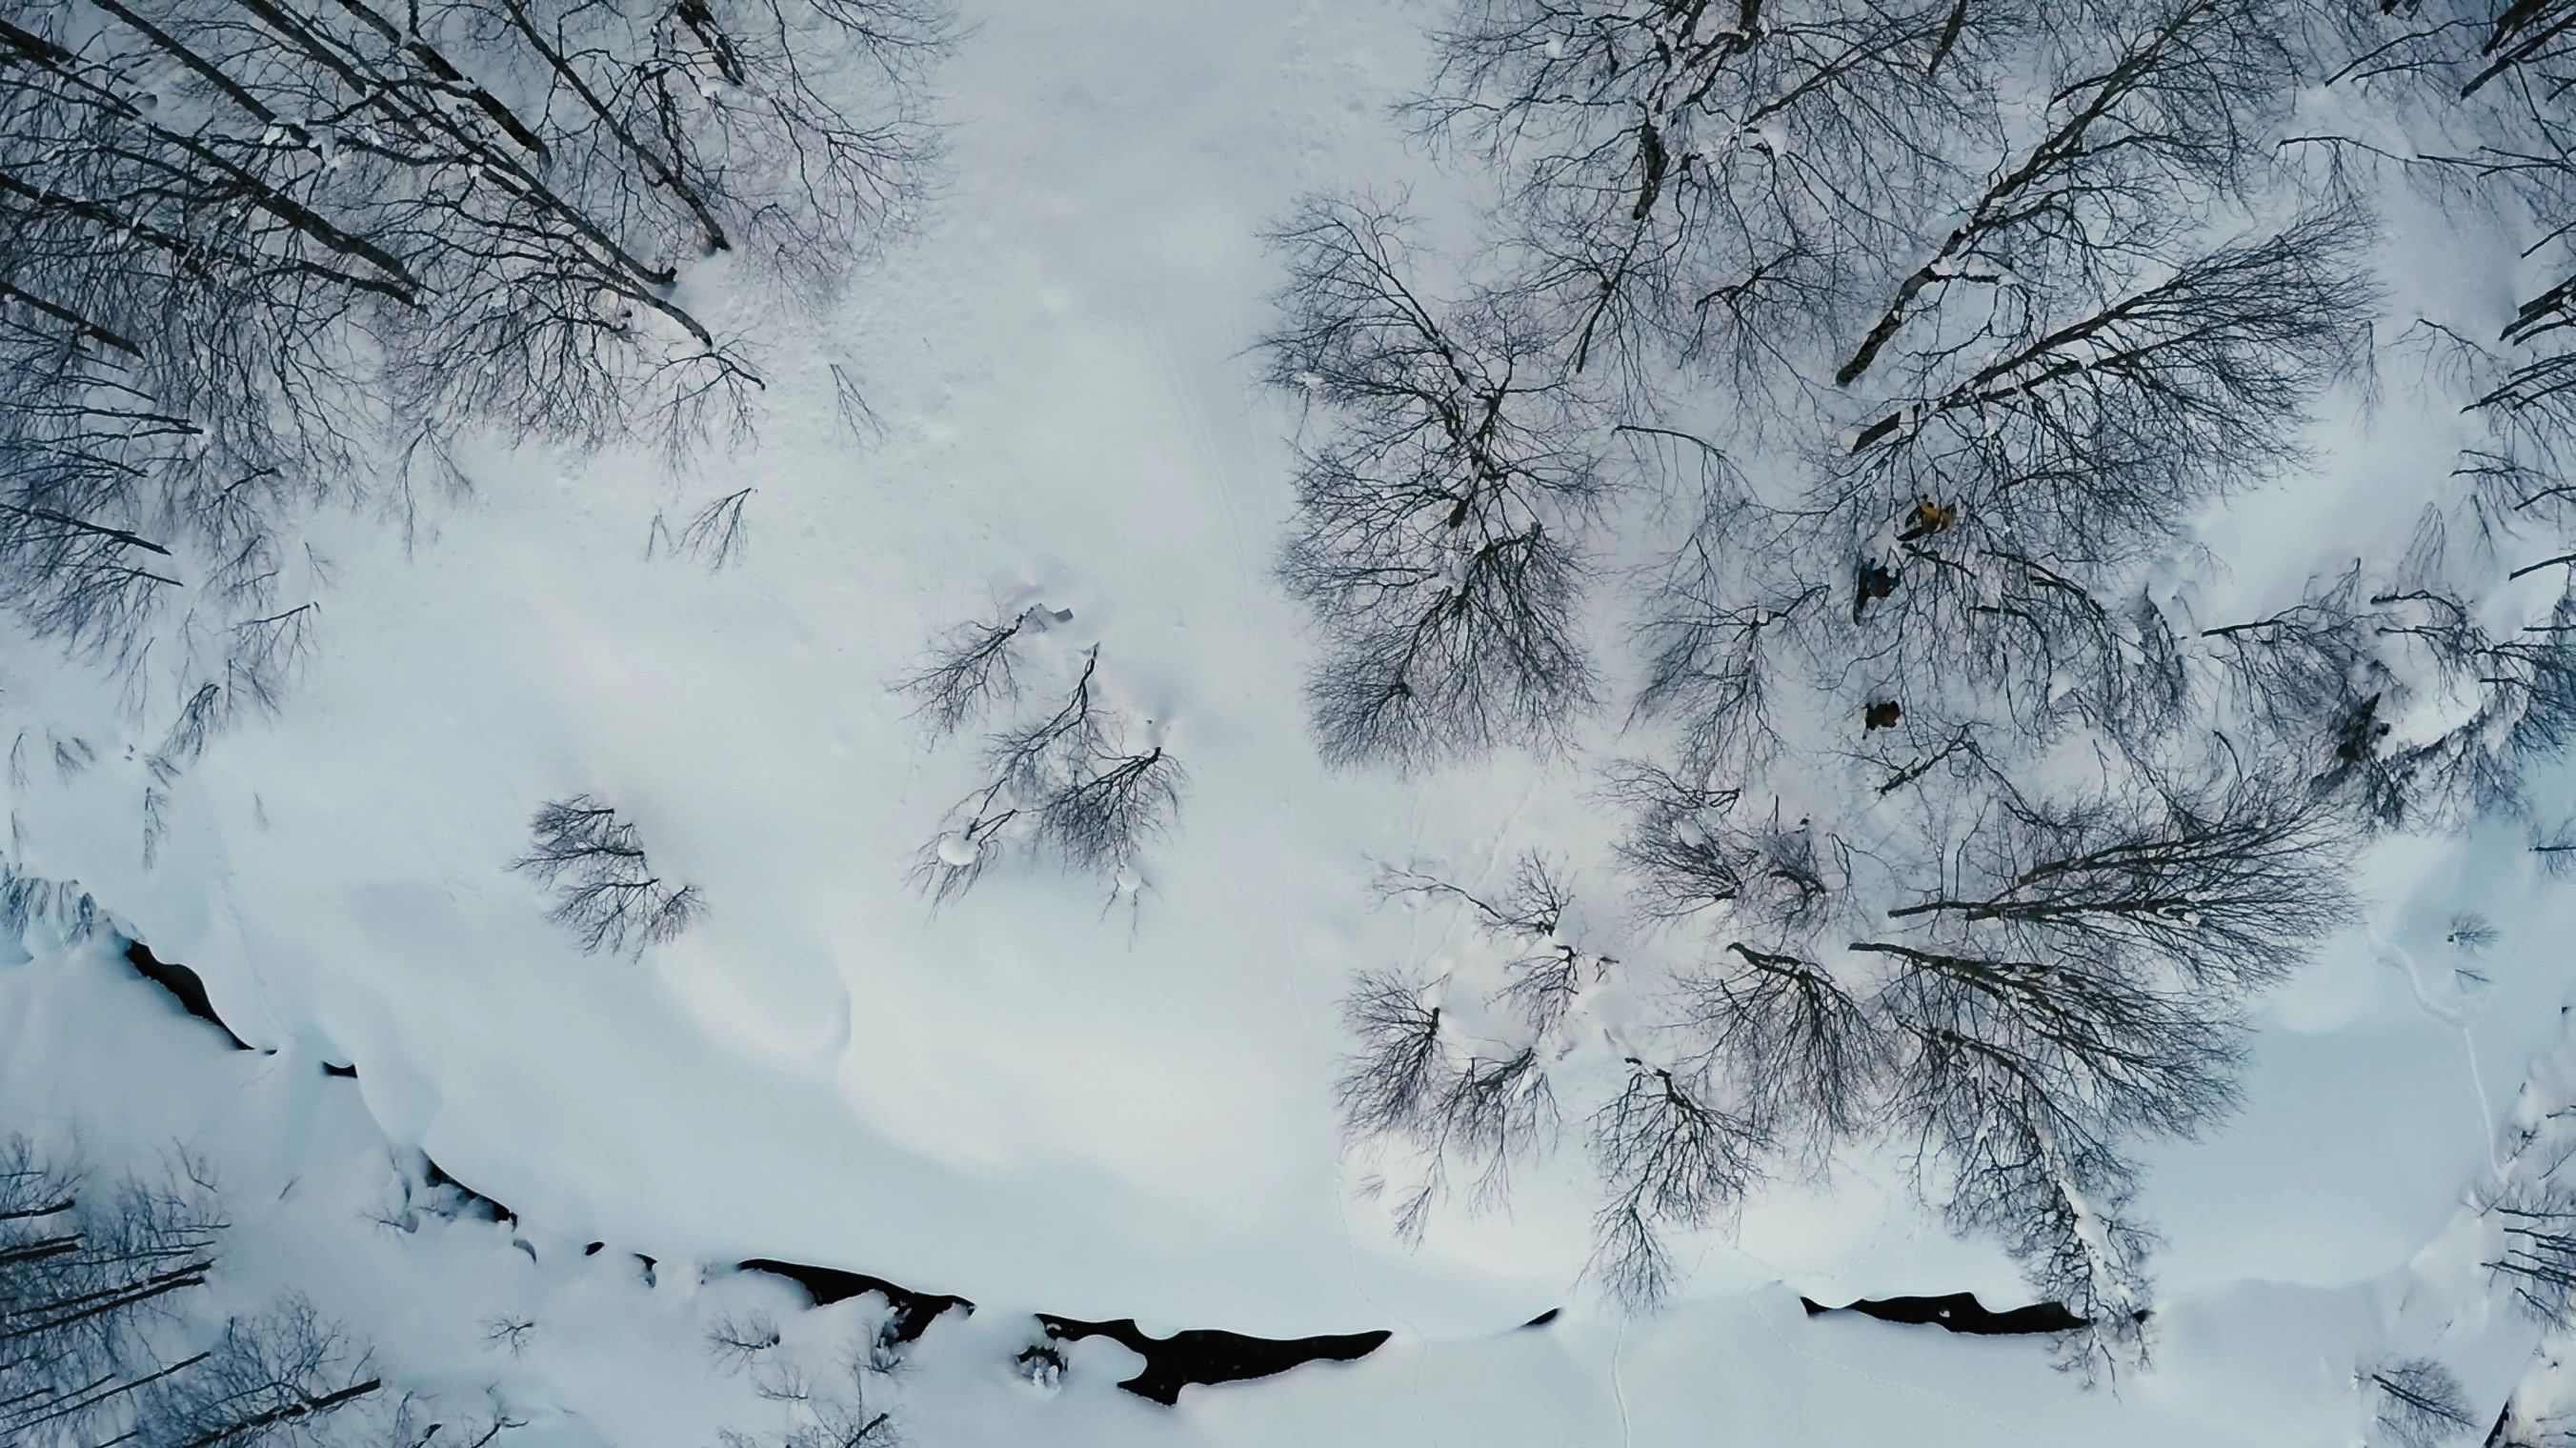 Winter Landscape Snow Covered Mountains Aerial View Fly Over Stock Footage Ad Covered Mountains Snow Winter In 2020 Winter Landscape Aerial View Landscape